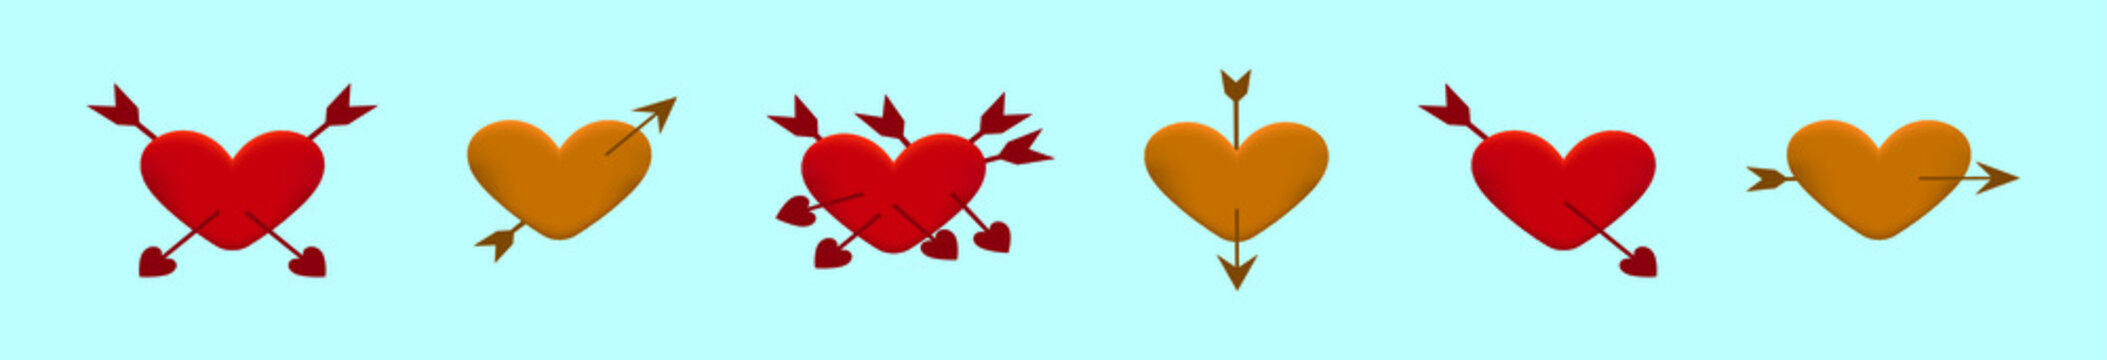 set of arrow through heart cartoon design template with various models. vector illustration isolated on blue background